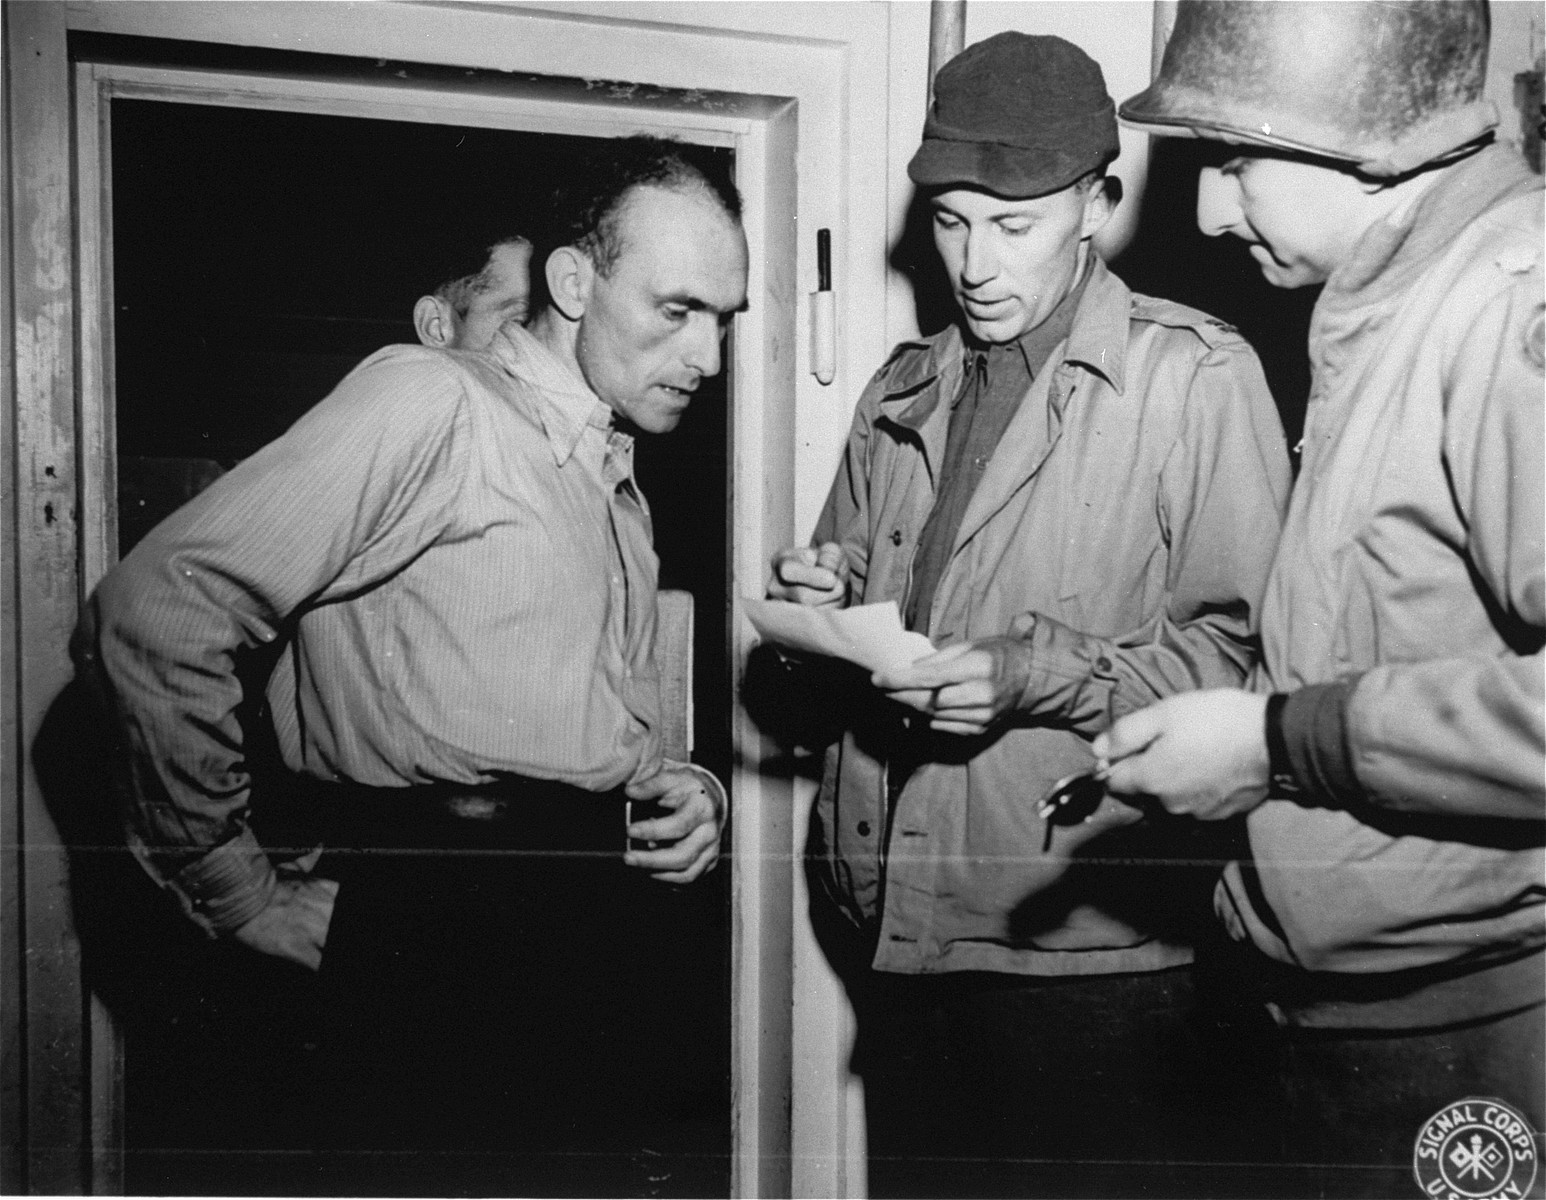 Lt. Taylor and Major Cohen (donor) trace down the identity of some American pilots who were killed and cremated in Mauthausen.